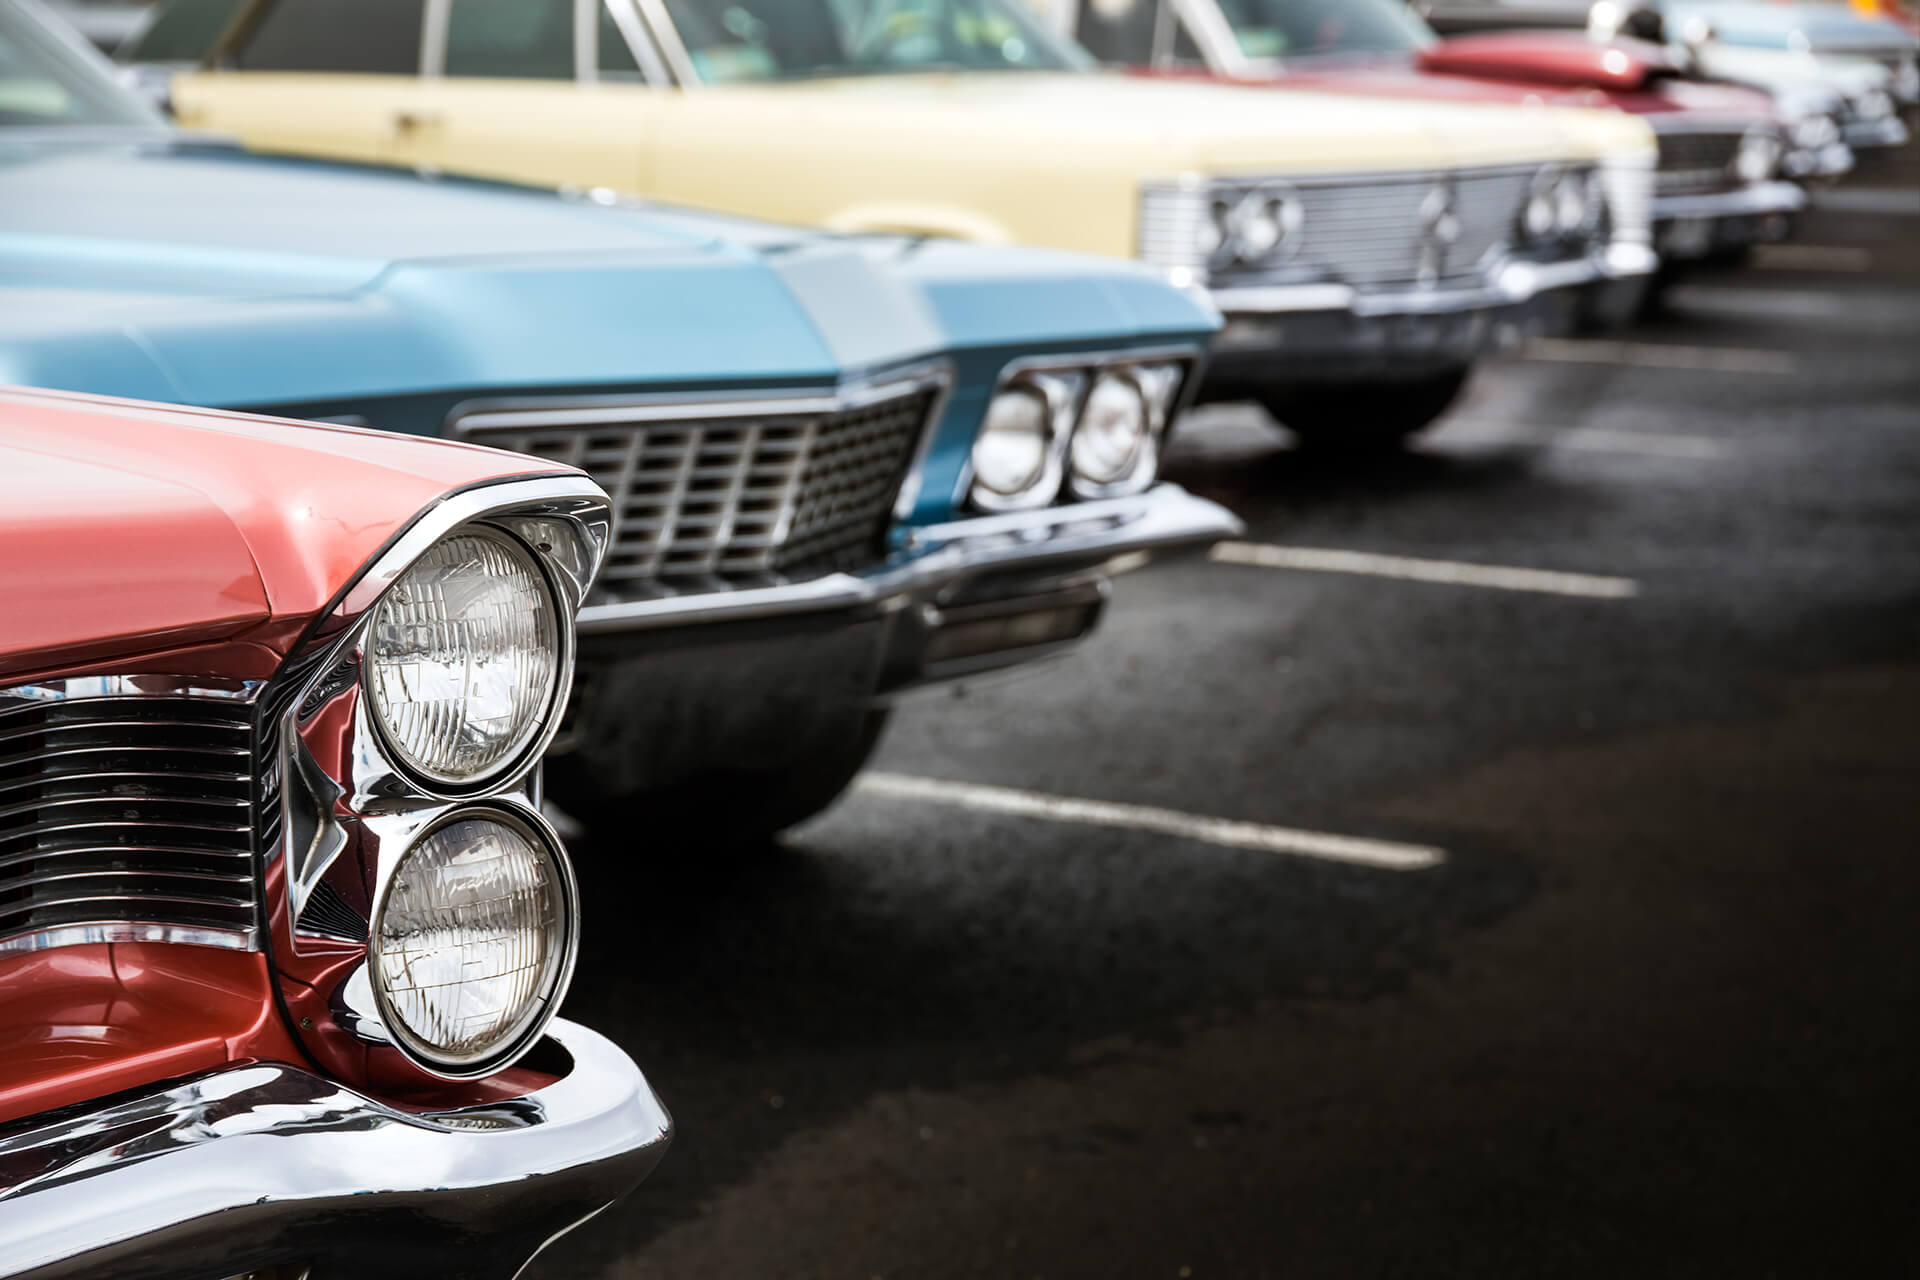 Picture of multiple classic cars lined up in a parking lot. Represents classic car insurance